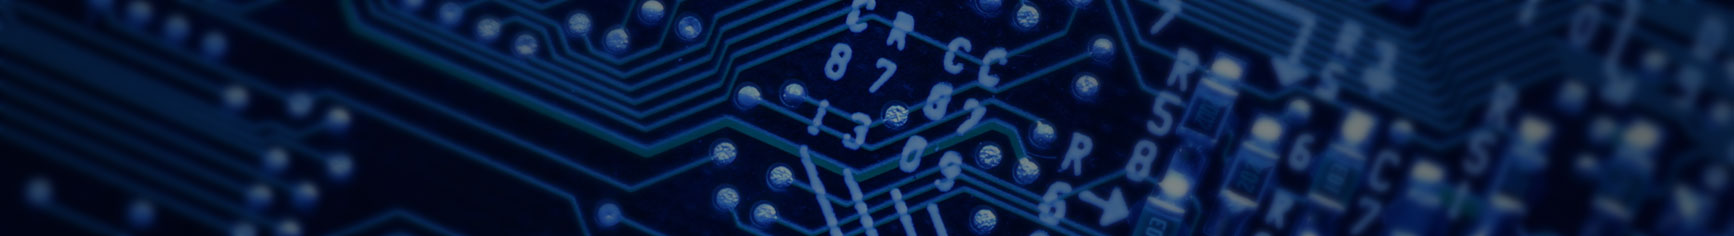 Circuit Board Repair Services